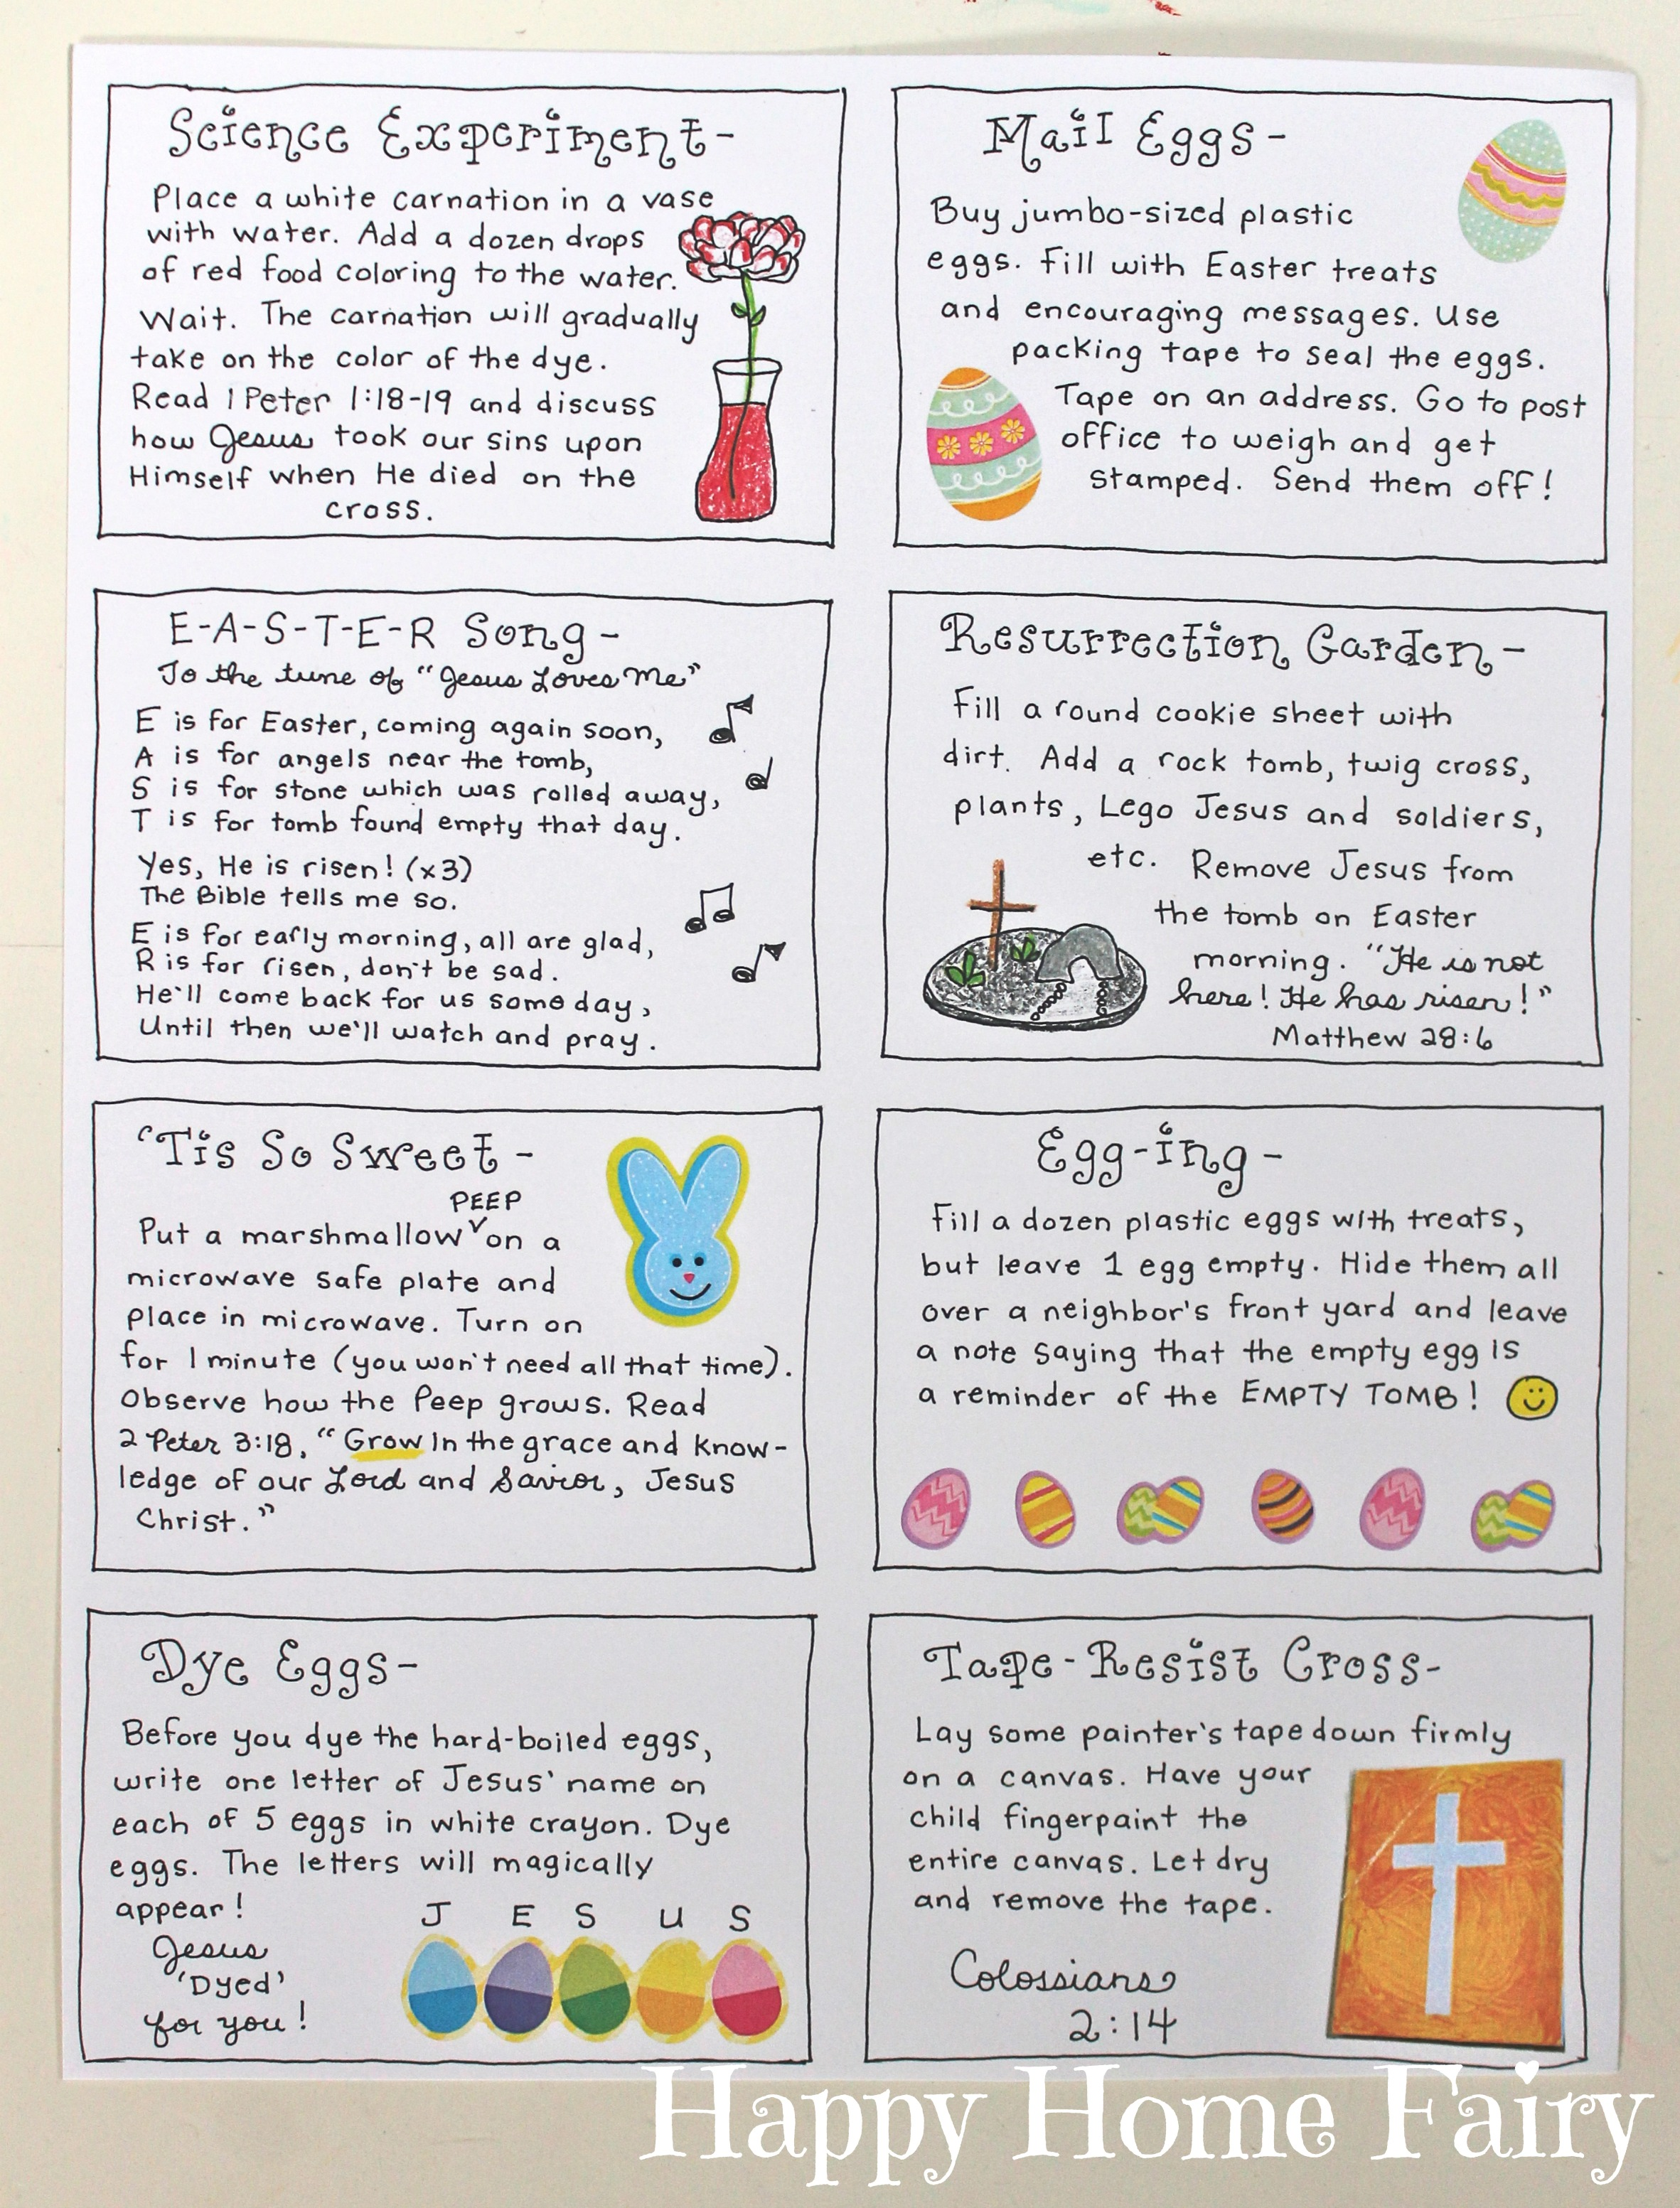 medium resolution of The Joy Journey - Christ-Centered Easter Activities (FREE Printable) -  Happy Home Fairy